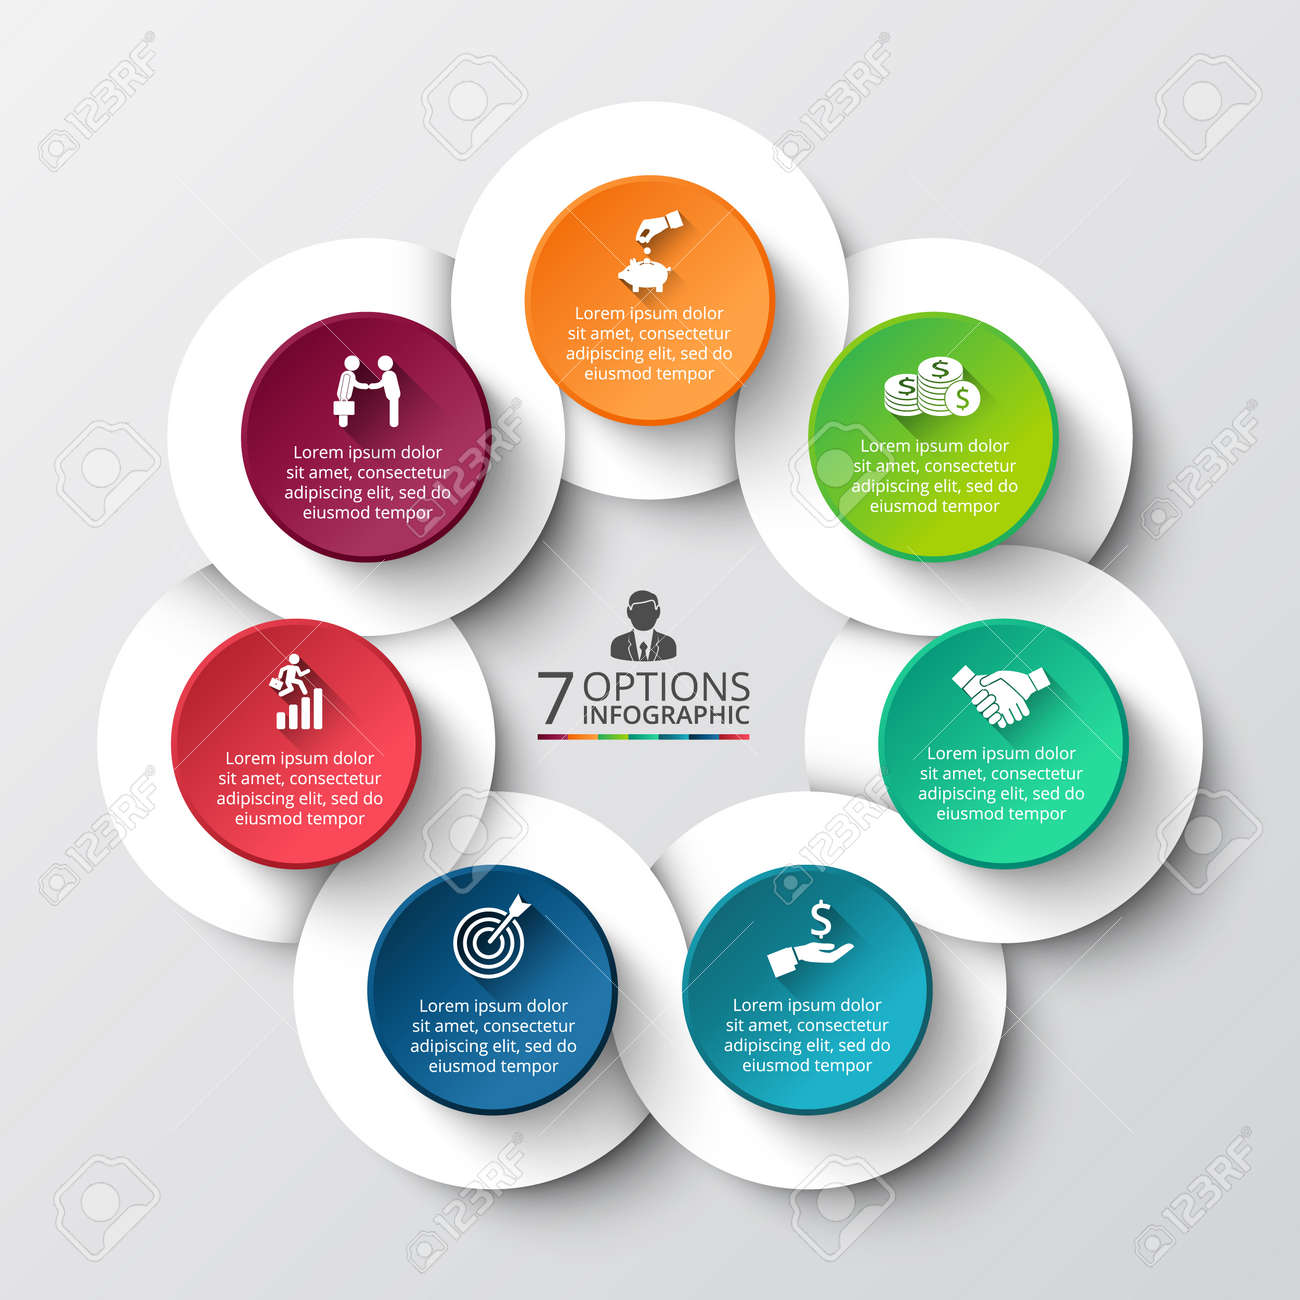 vector infographic design template business concept with 7 options